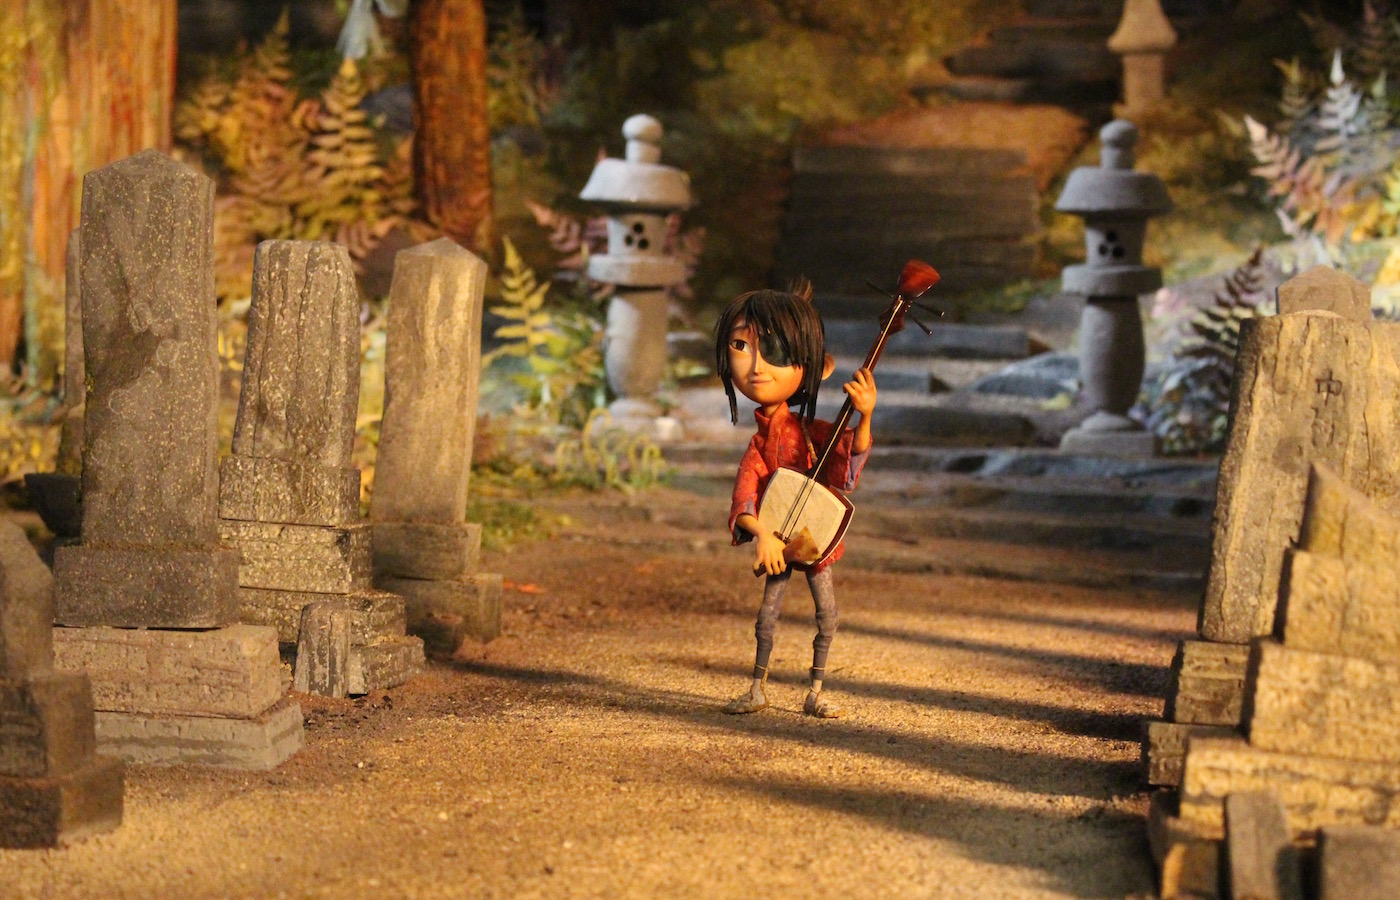 Kubo and the two strings cemetery 6